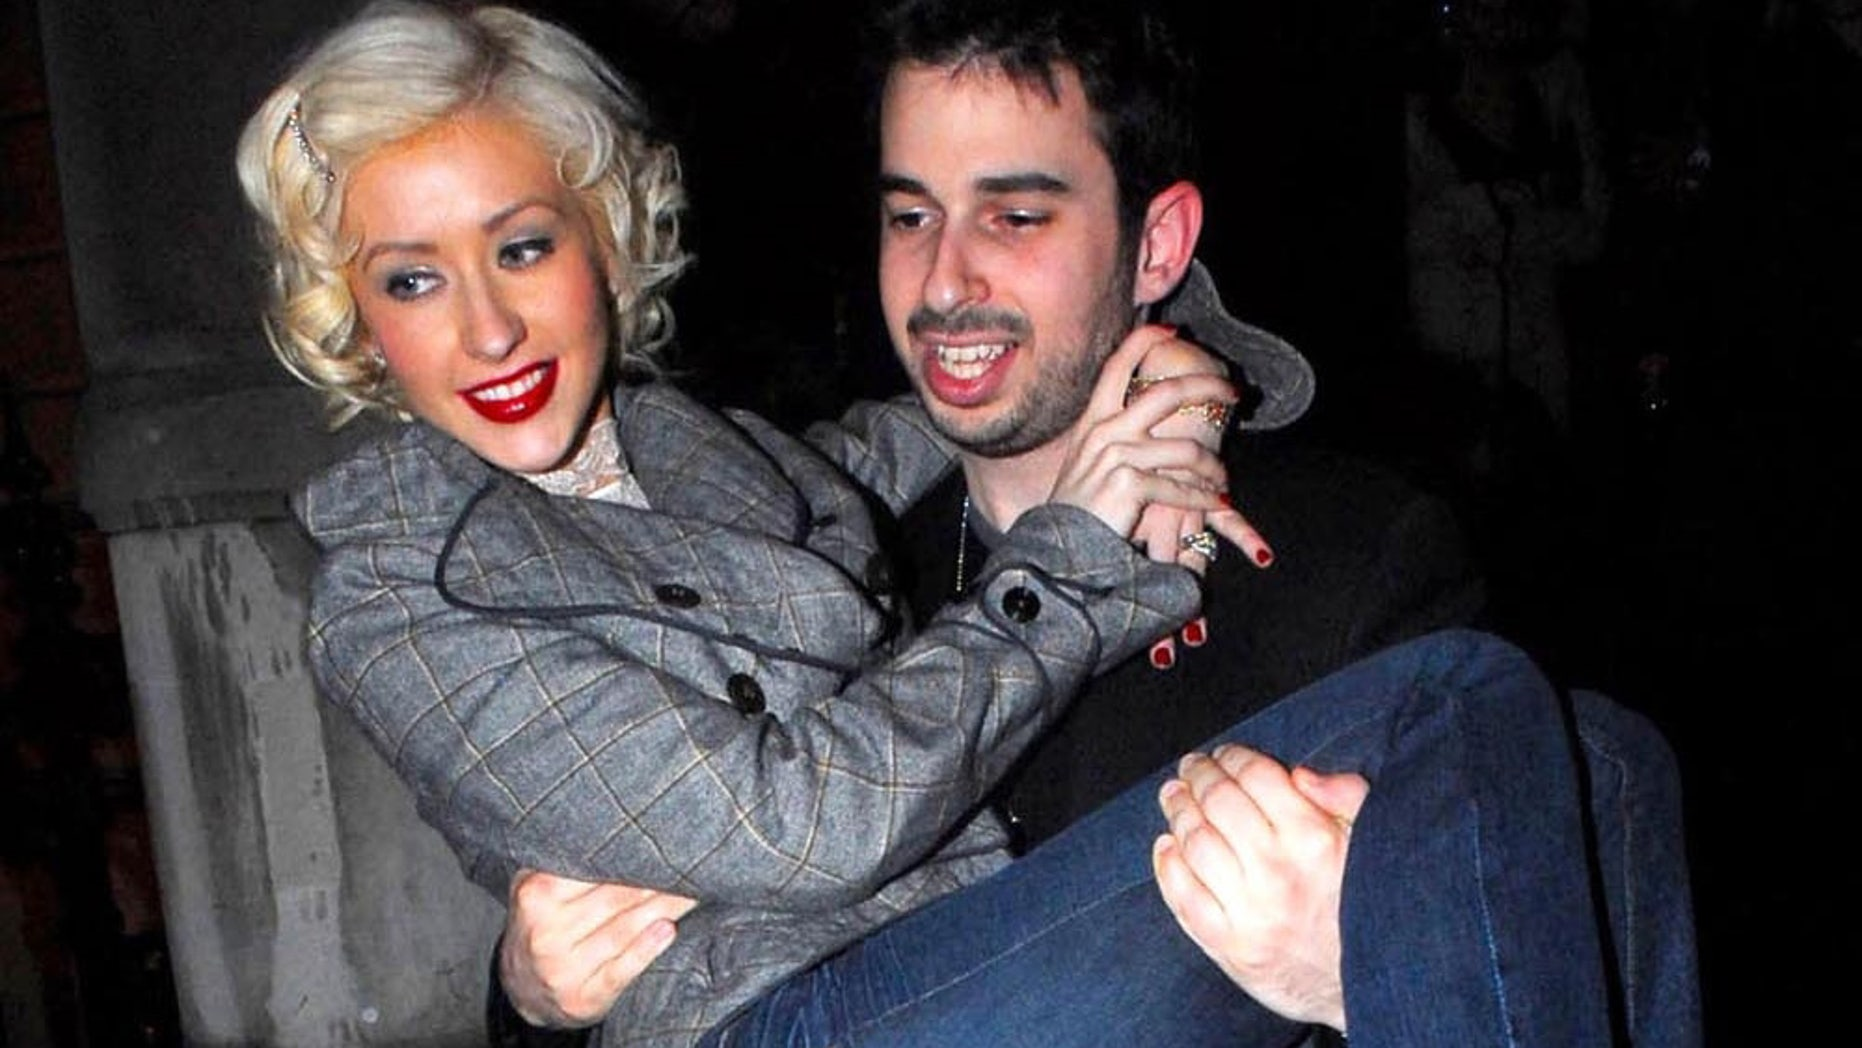 March 07, 2006: In happier days together pop star Christina Aguilera is seen here leavening her exclusive London hotel with hubby Jordan Bratman while visiting the UK for an album release.